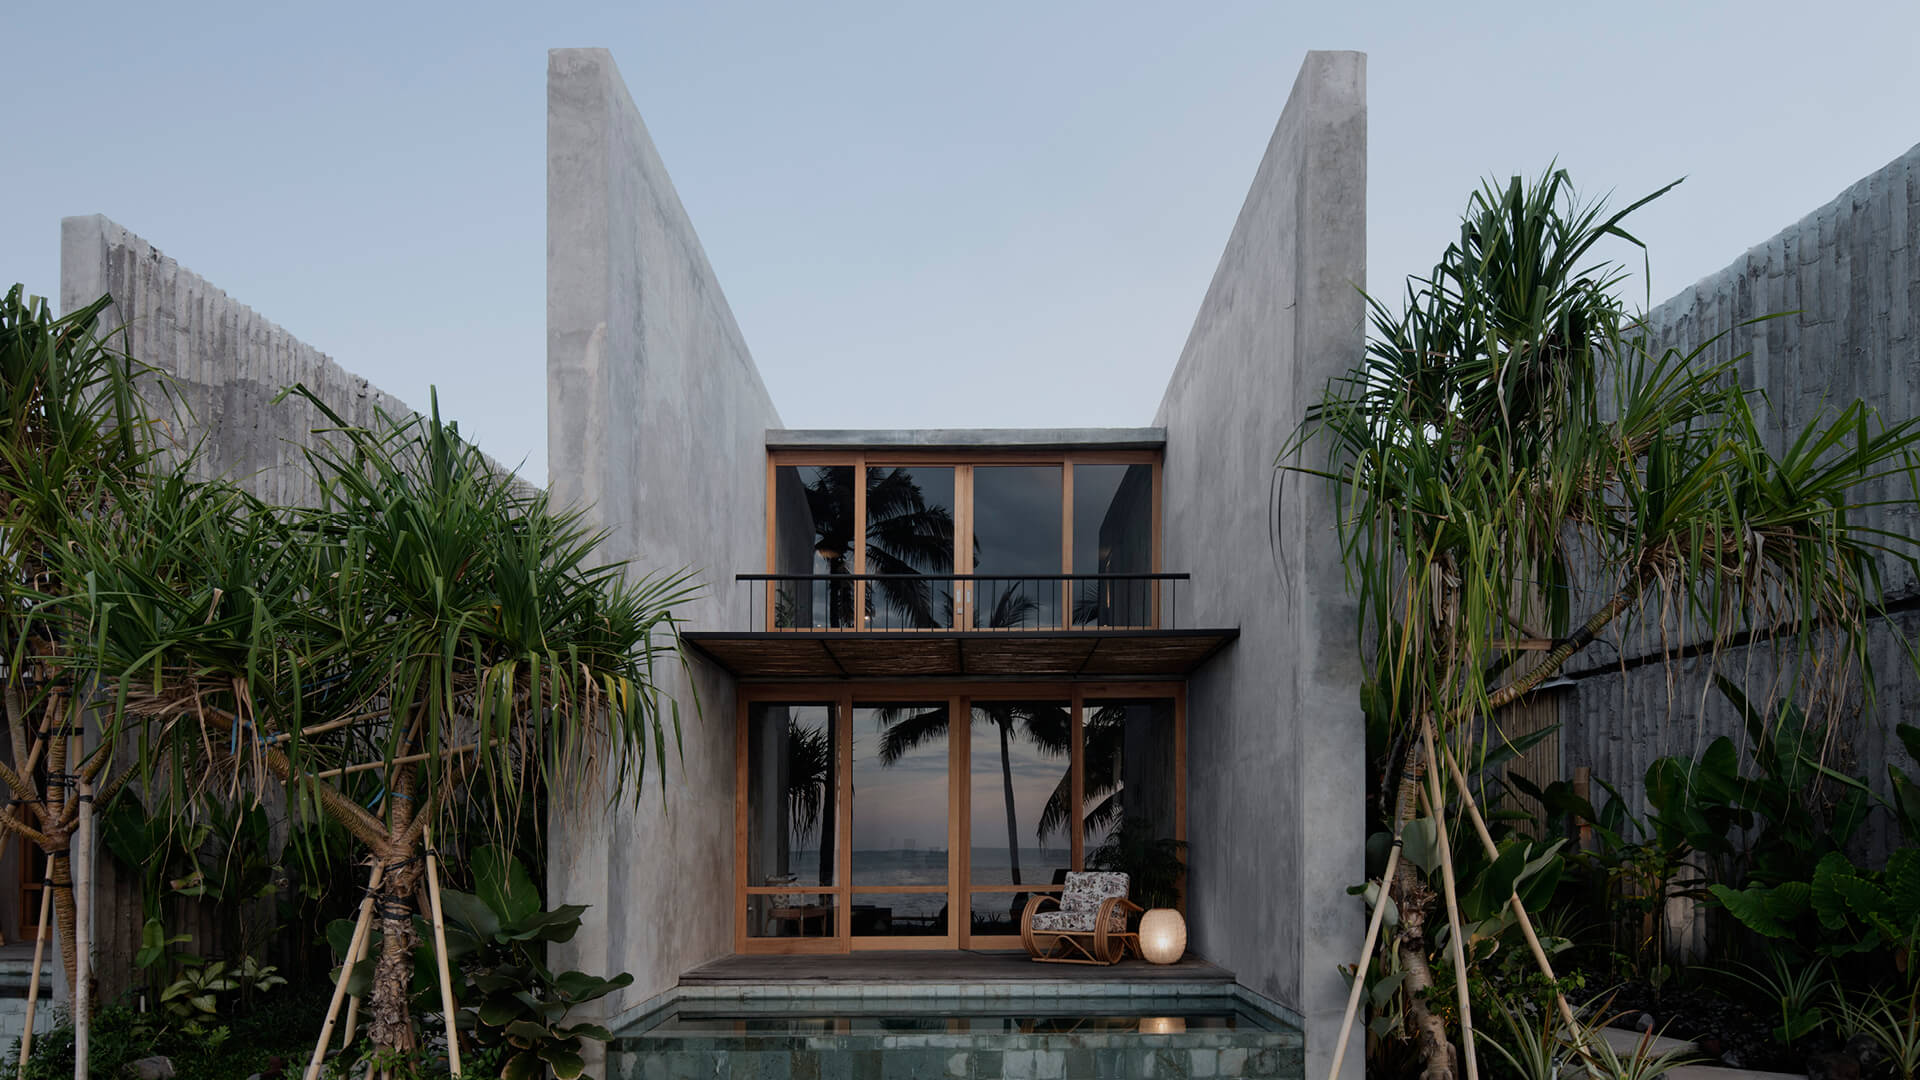 The Tiing, a luxury resort by Nic Brunsdon in Bali, Indonesia | The Tiing hotel | Nic Brunsdon | STIRworld